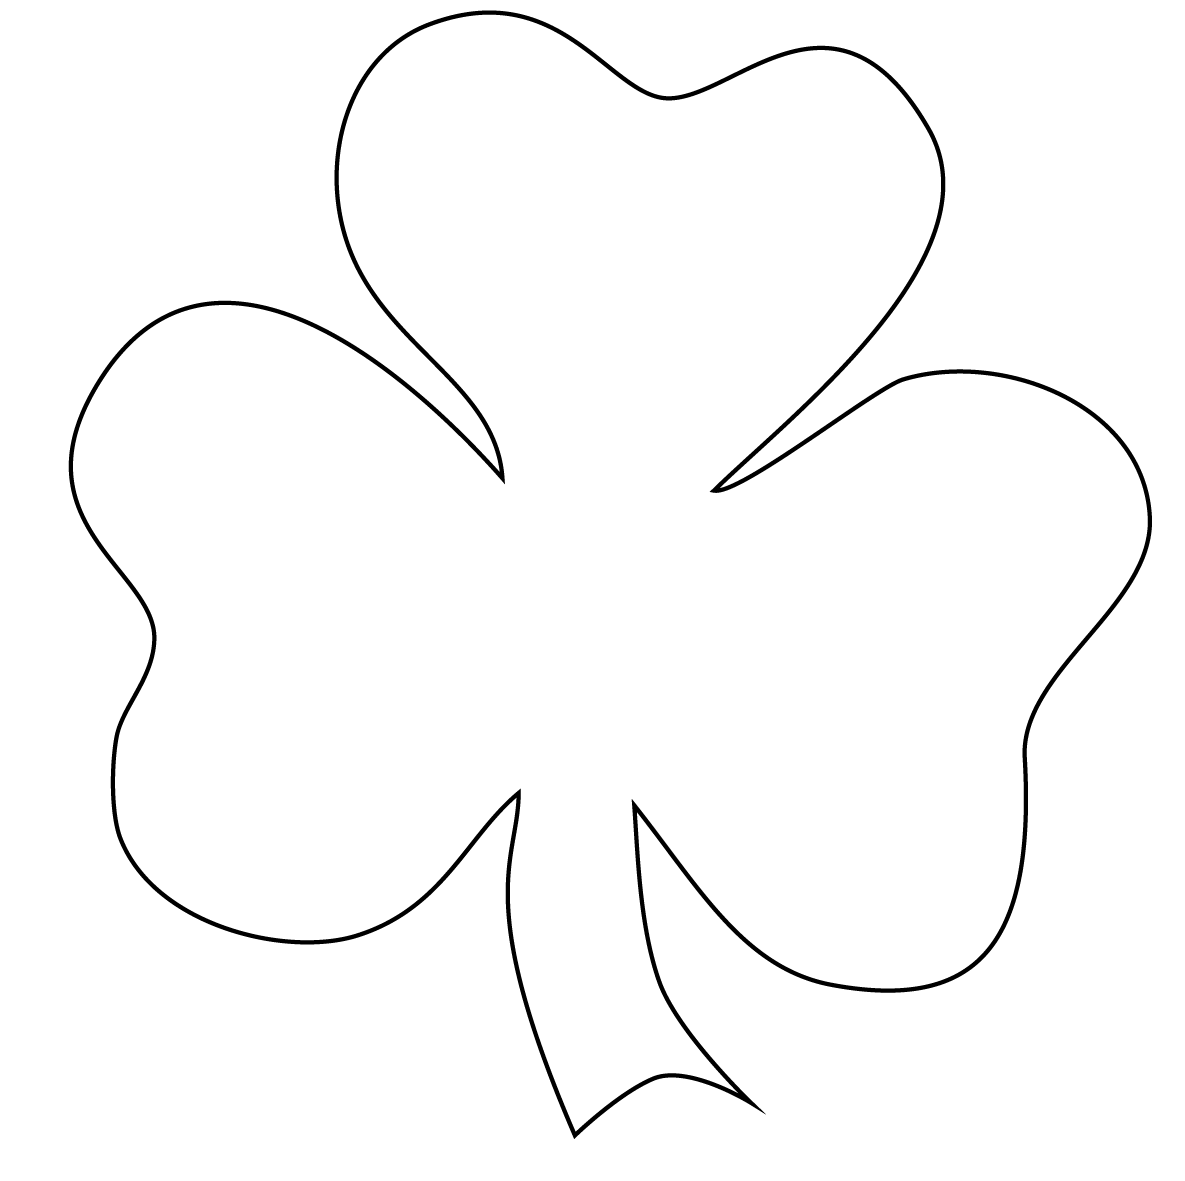 Candid image with shamrock coloring pages printable